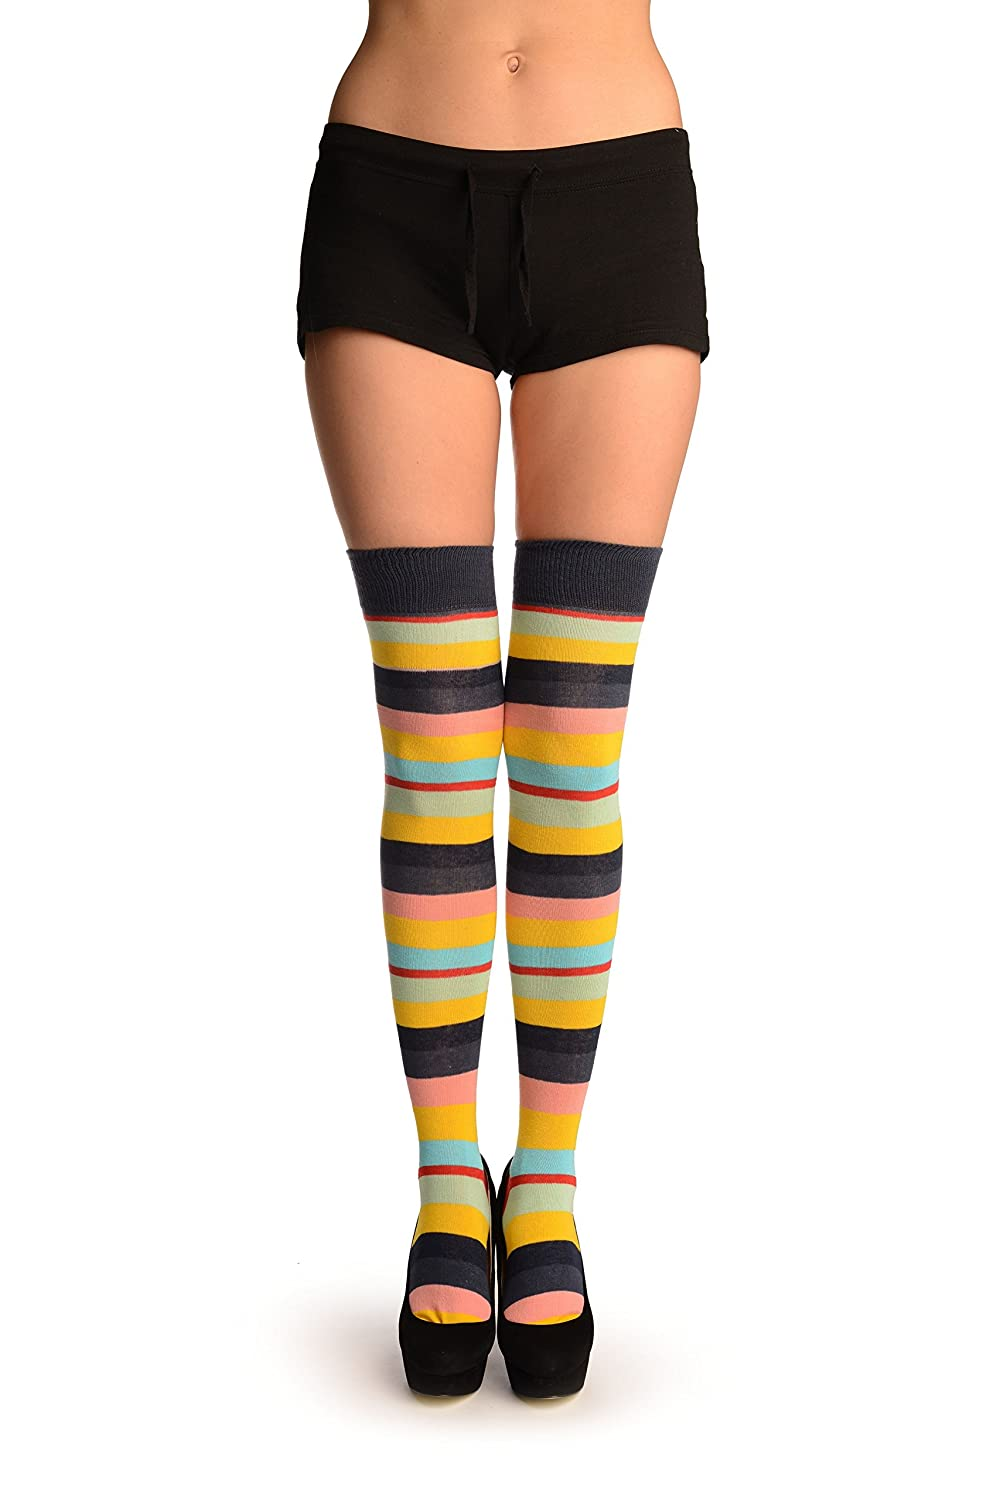 f26fca47f66 Rainbow Stripes With Red Over The Knee Socks - Multicoloured Striped Over  The Knee Socks  Amazon.co.uk  Clothing